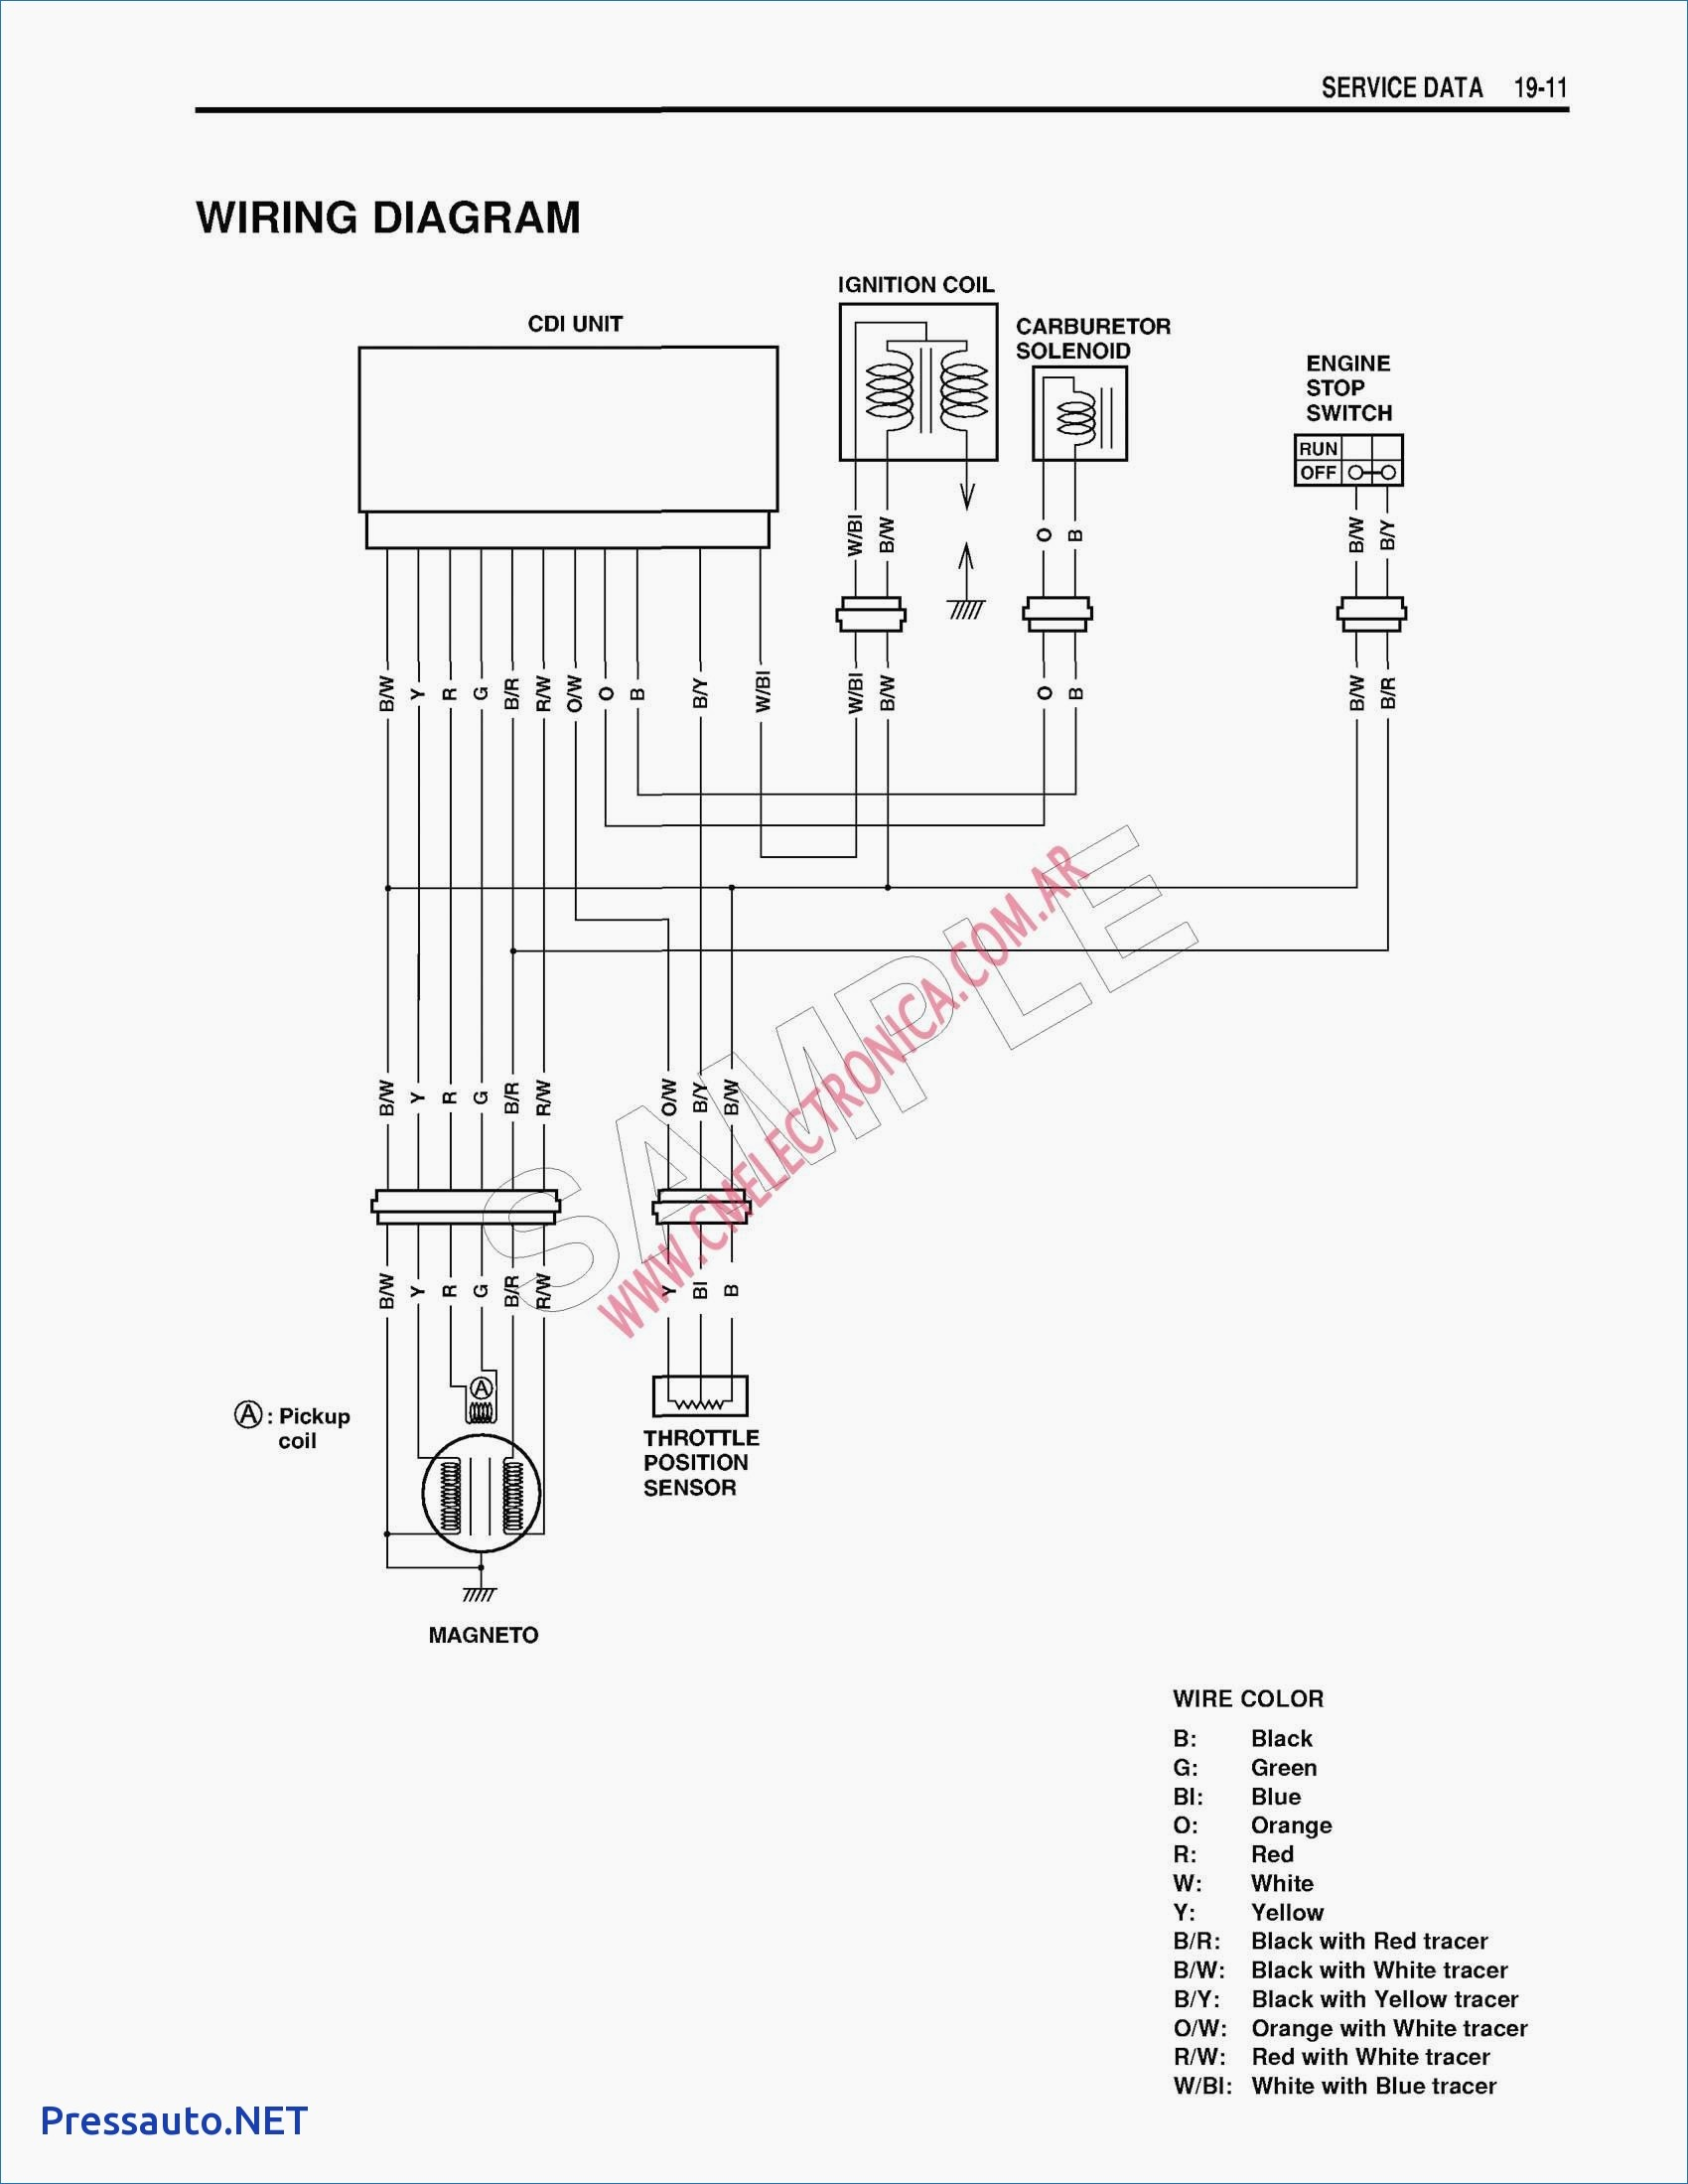 Cdi Ignition Wiring Diagram New Cdi Ignition Wiring Diagram Fitfathers